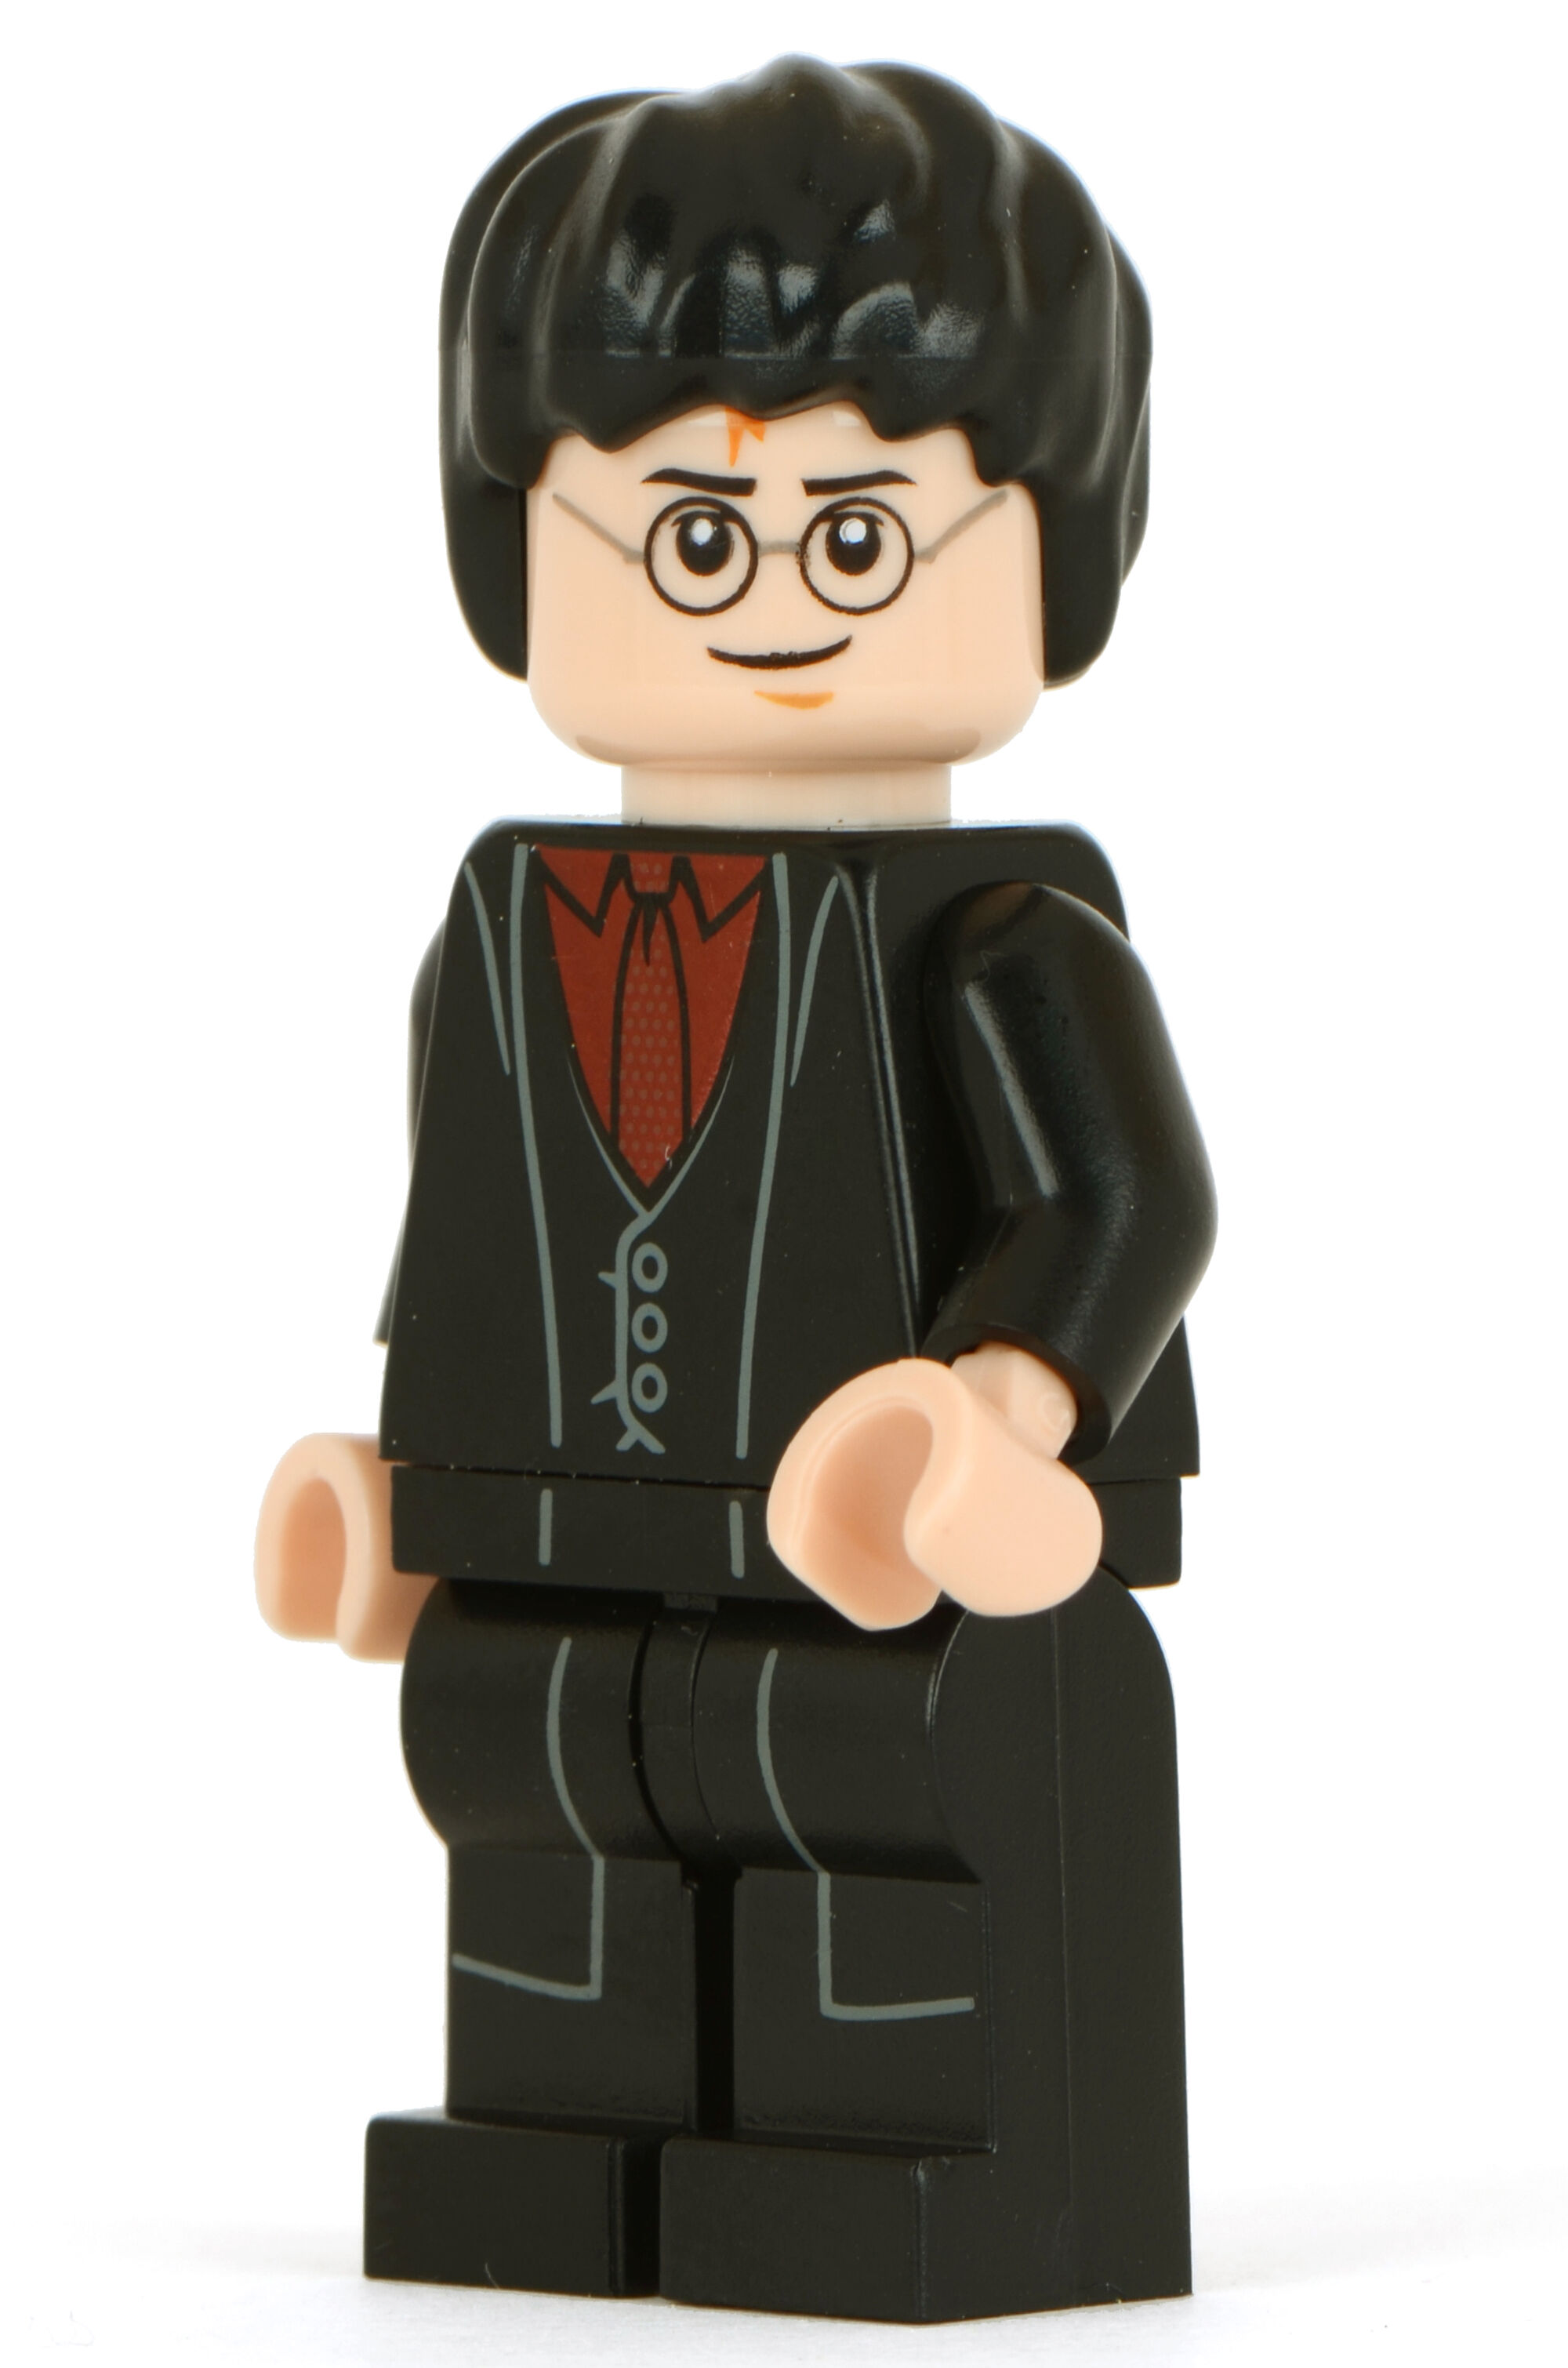 from Camron harry potter books gay character